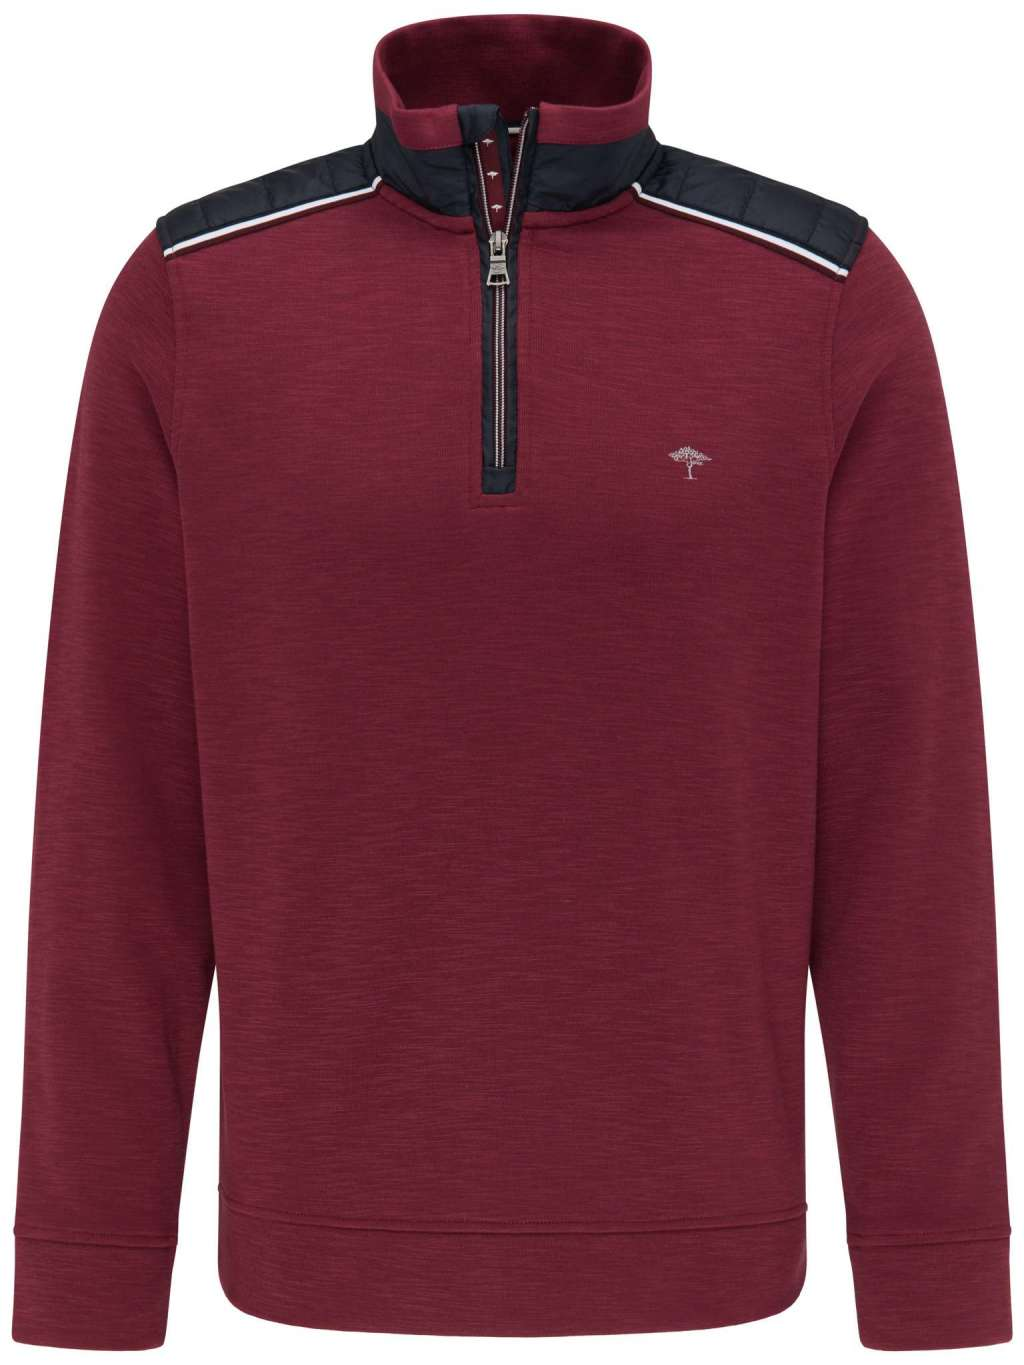 Fynch Hatton Knitwear in regular classic fit. Half-Zip, Hybrid  chosen in a Merlot colour